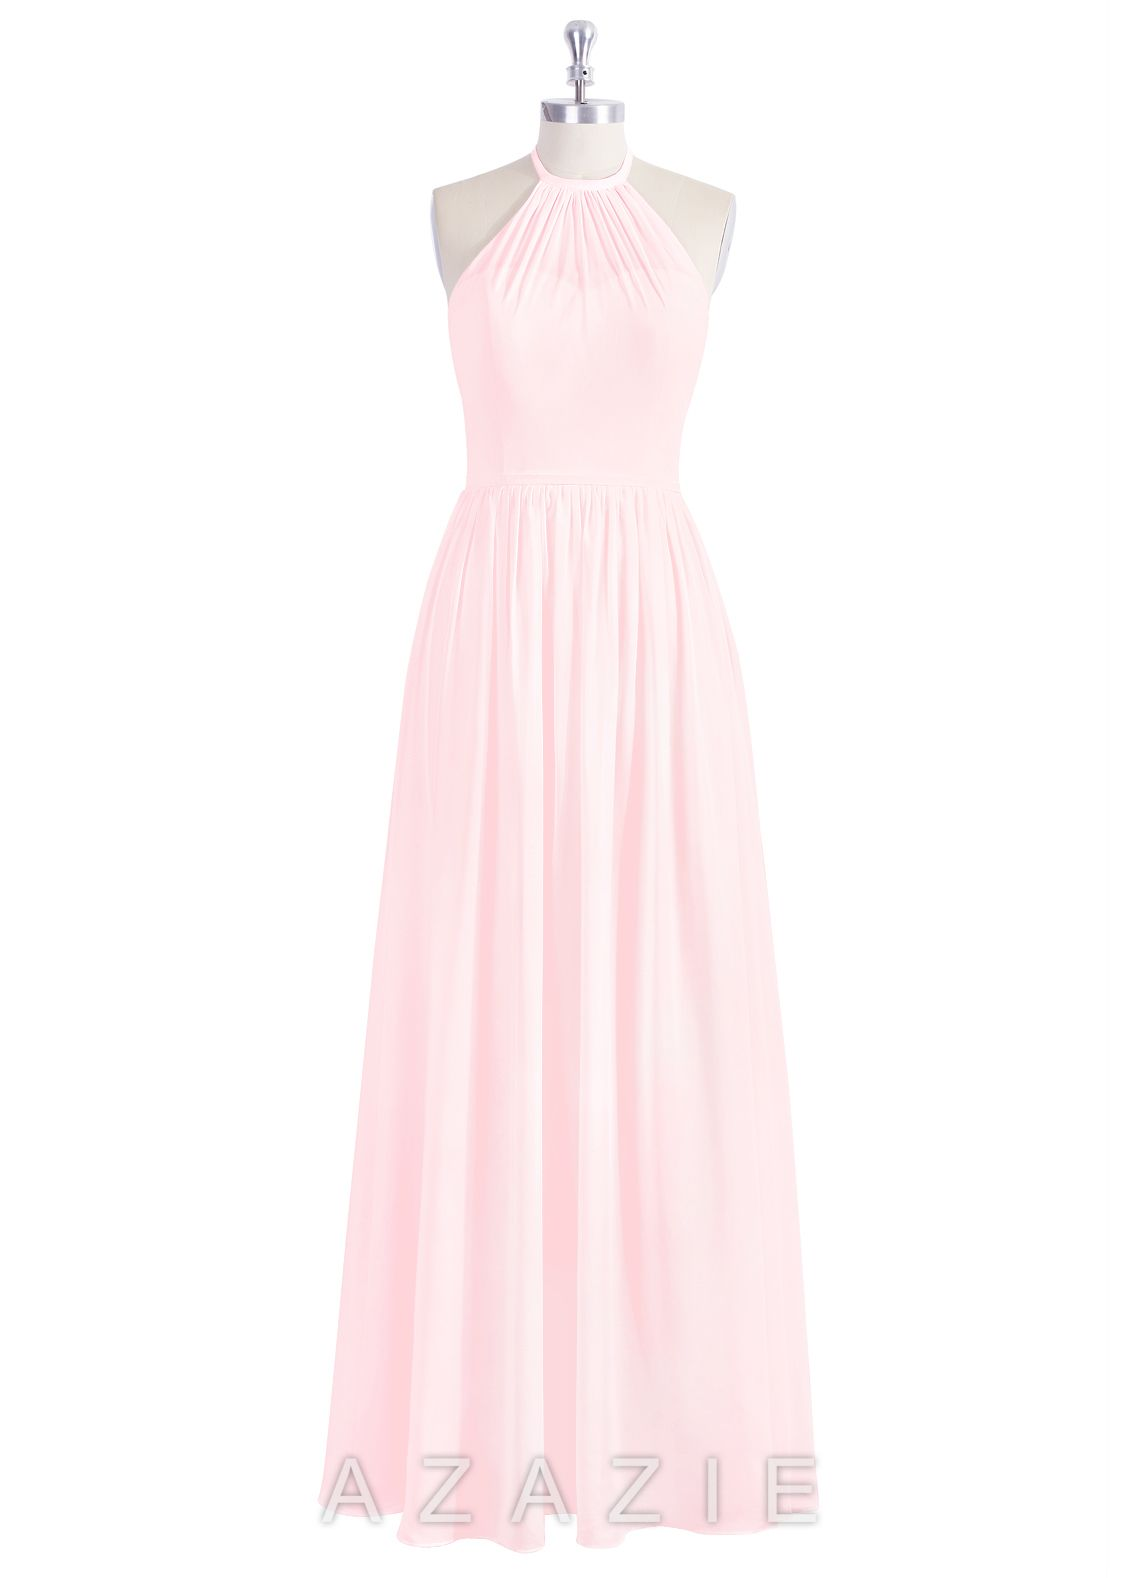 c8d0169339d Shop Azazie Bridesmaid Dress - Kailyn in Chiffon. Find the perfect  made-to-order bridesmaid dresses for your bridal party in your favorite  color